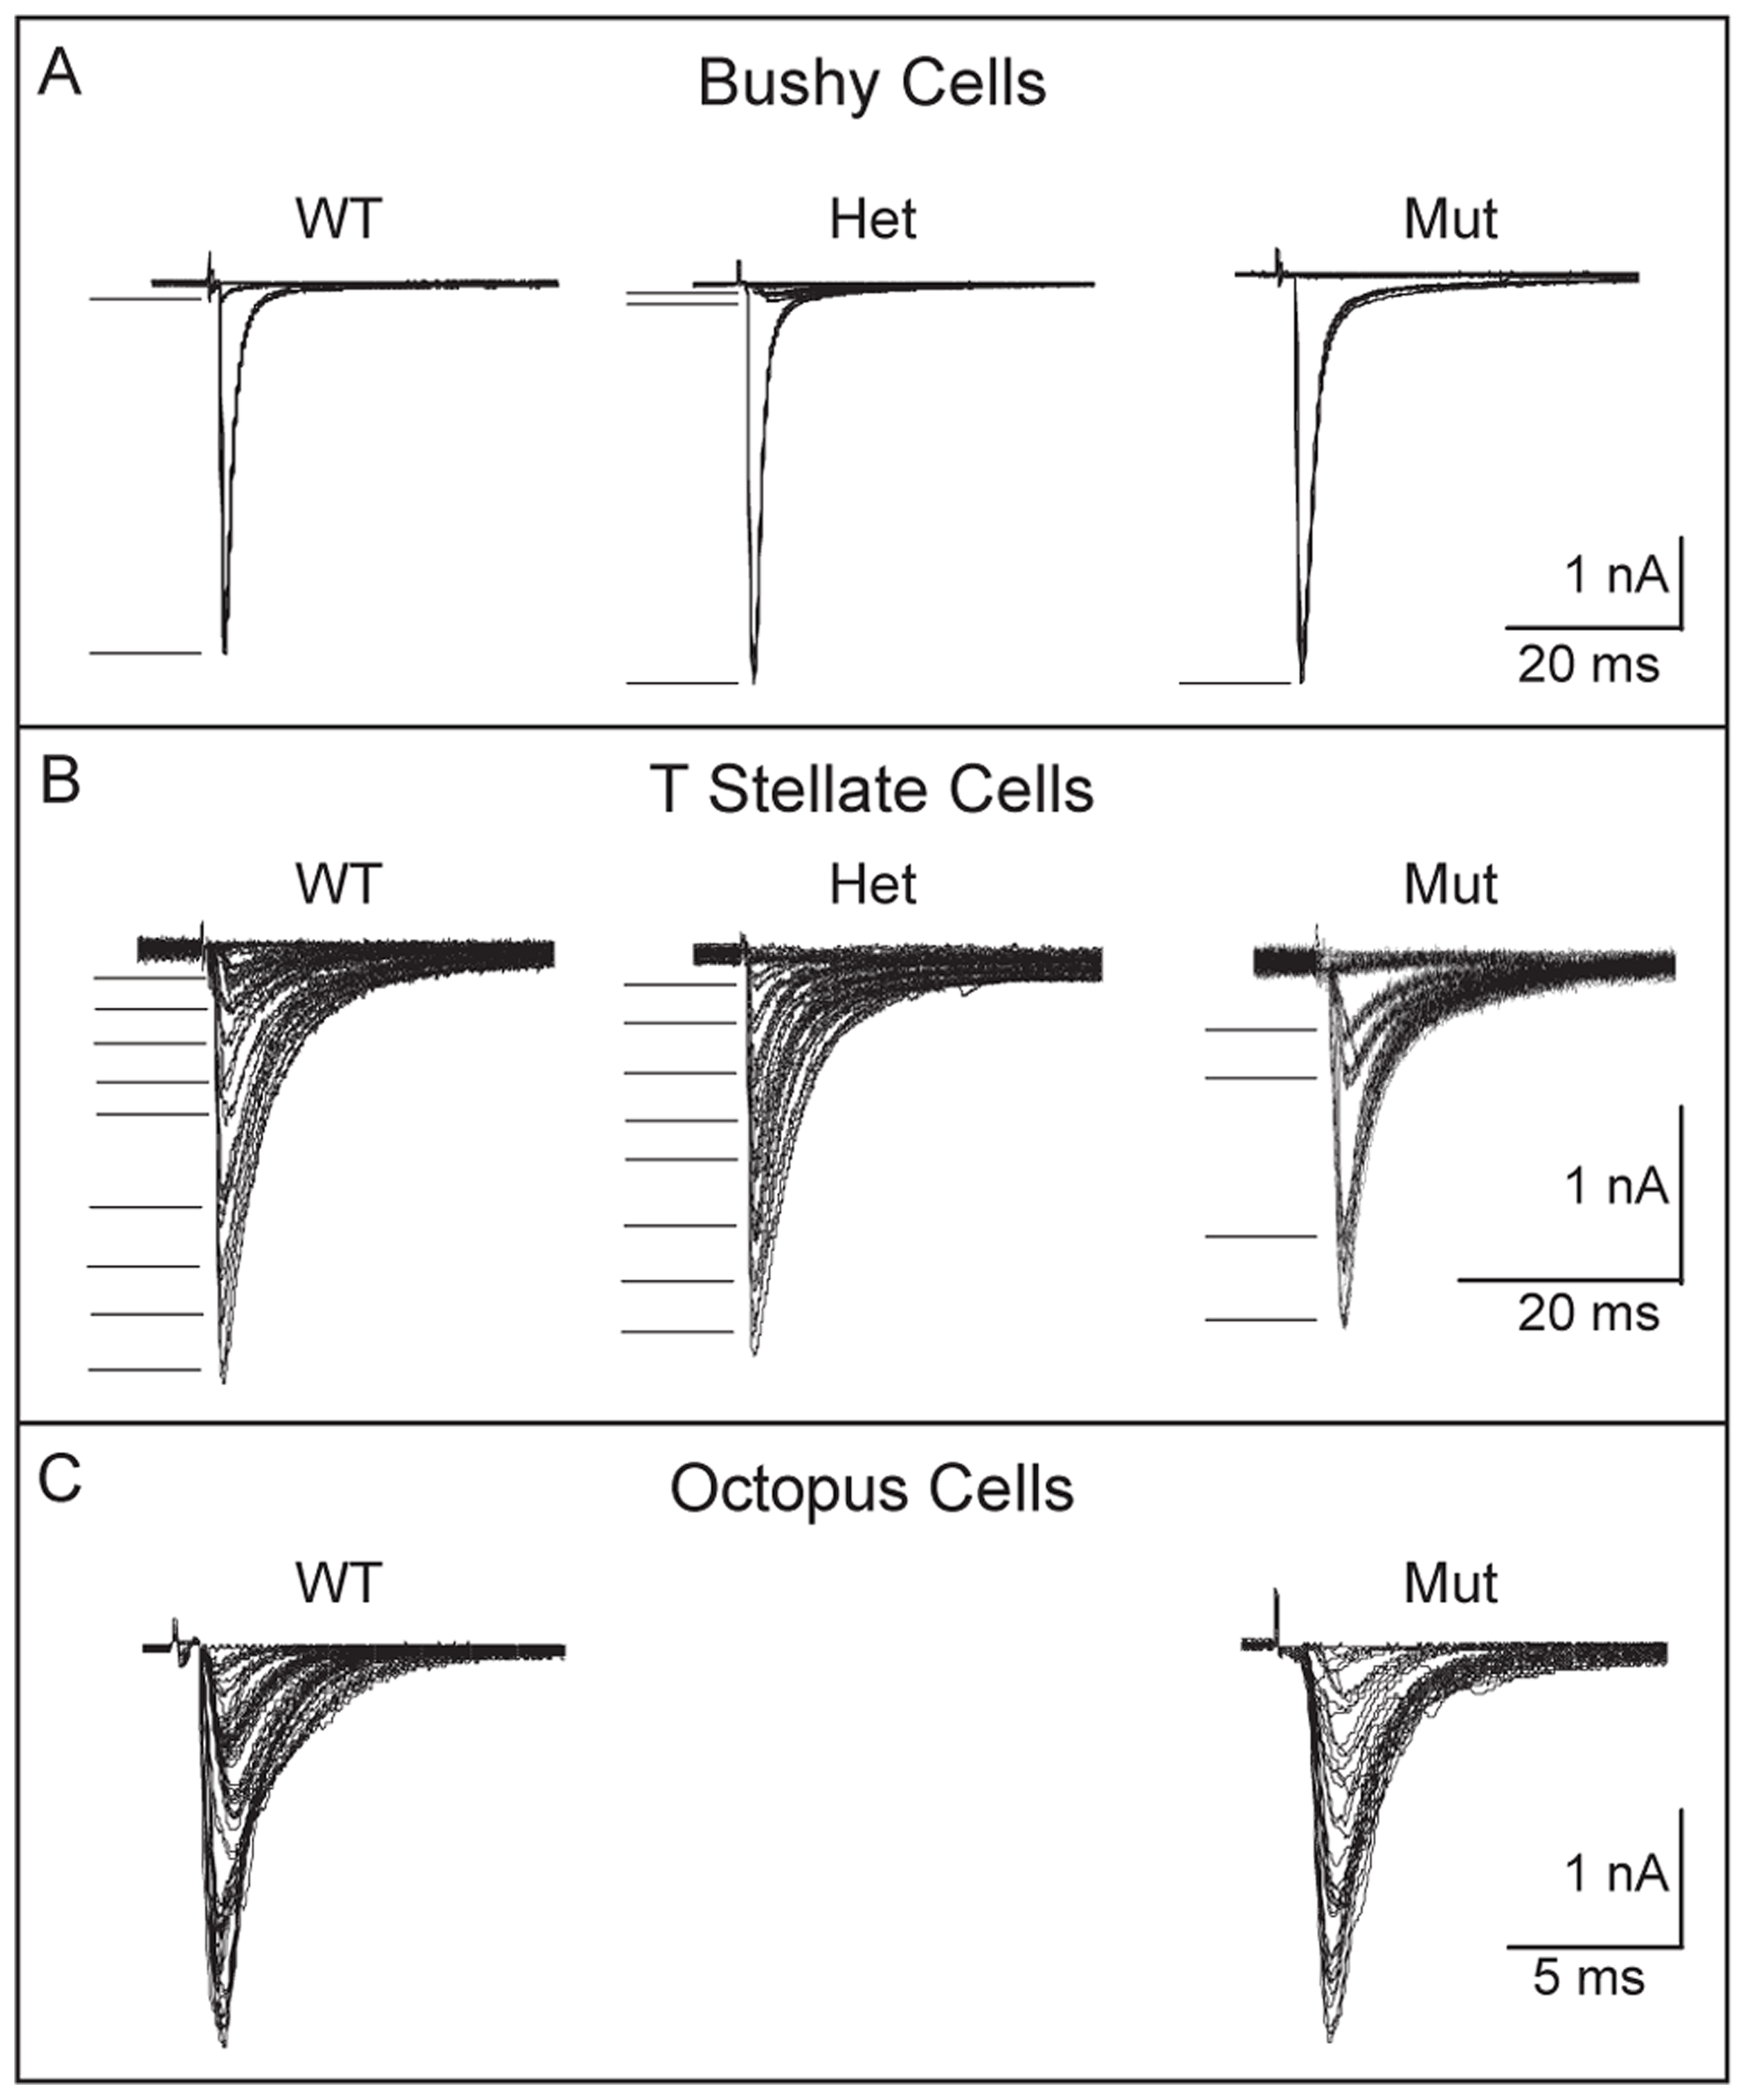 Convergence of SGNs onto bushy and T stellate cells tends to be lower in <i>Npr2</i> mutants.